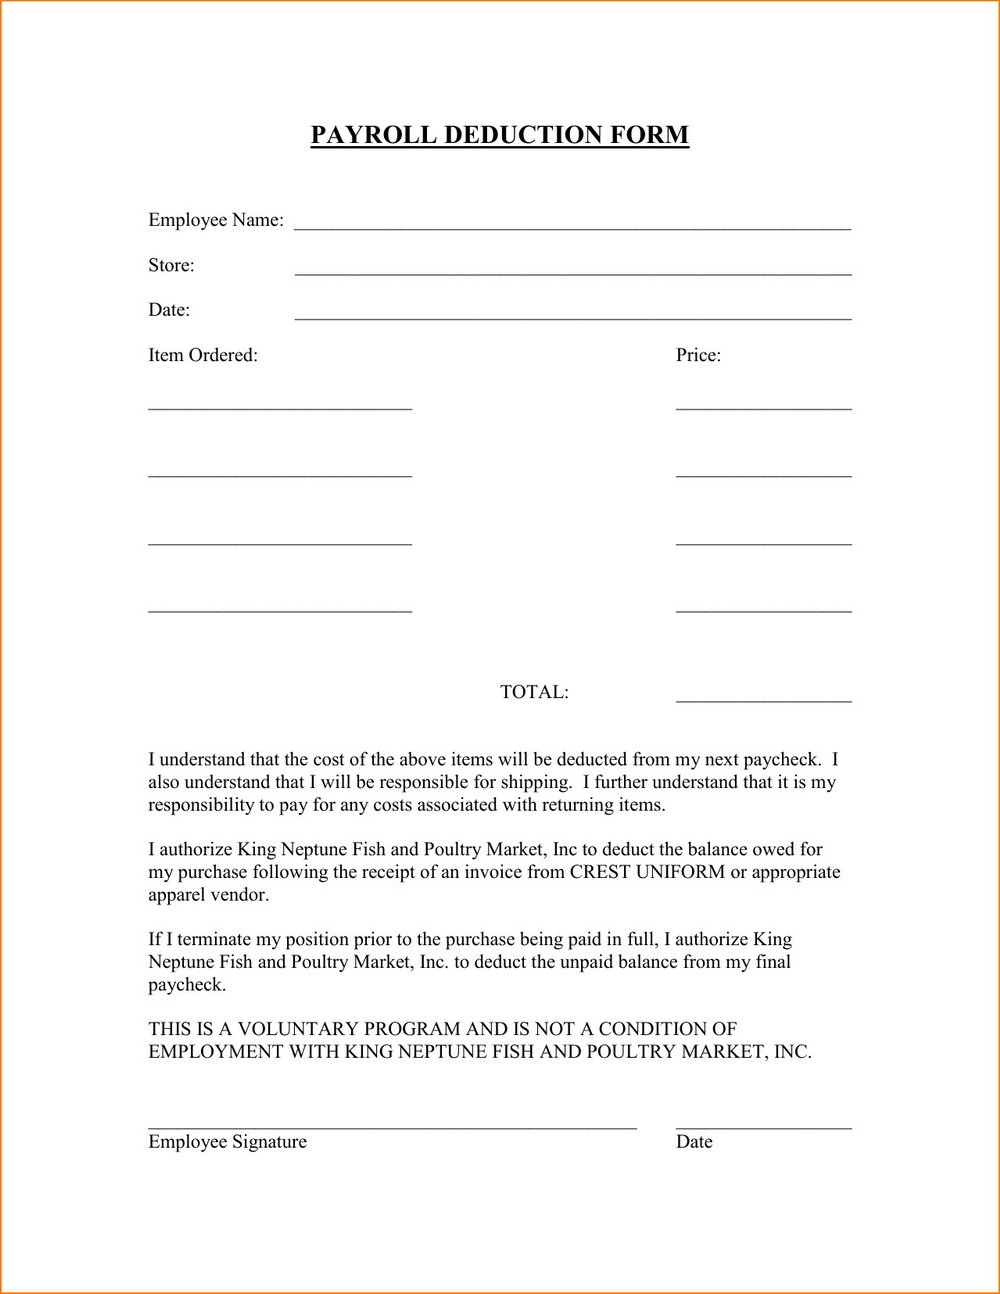 Payroll Deduction Authorization Form Template Free